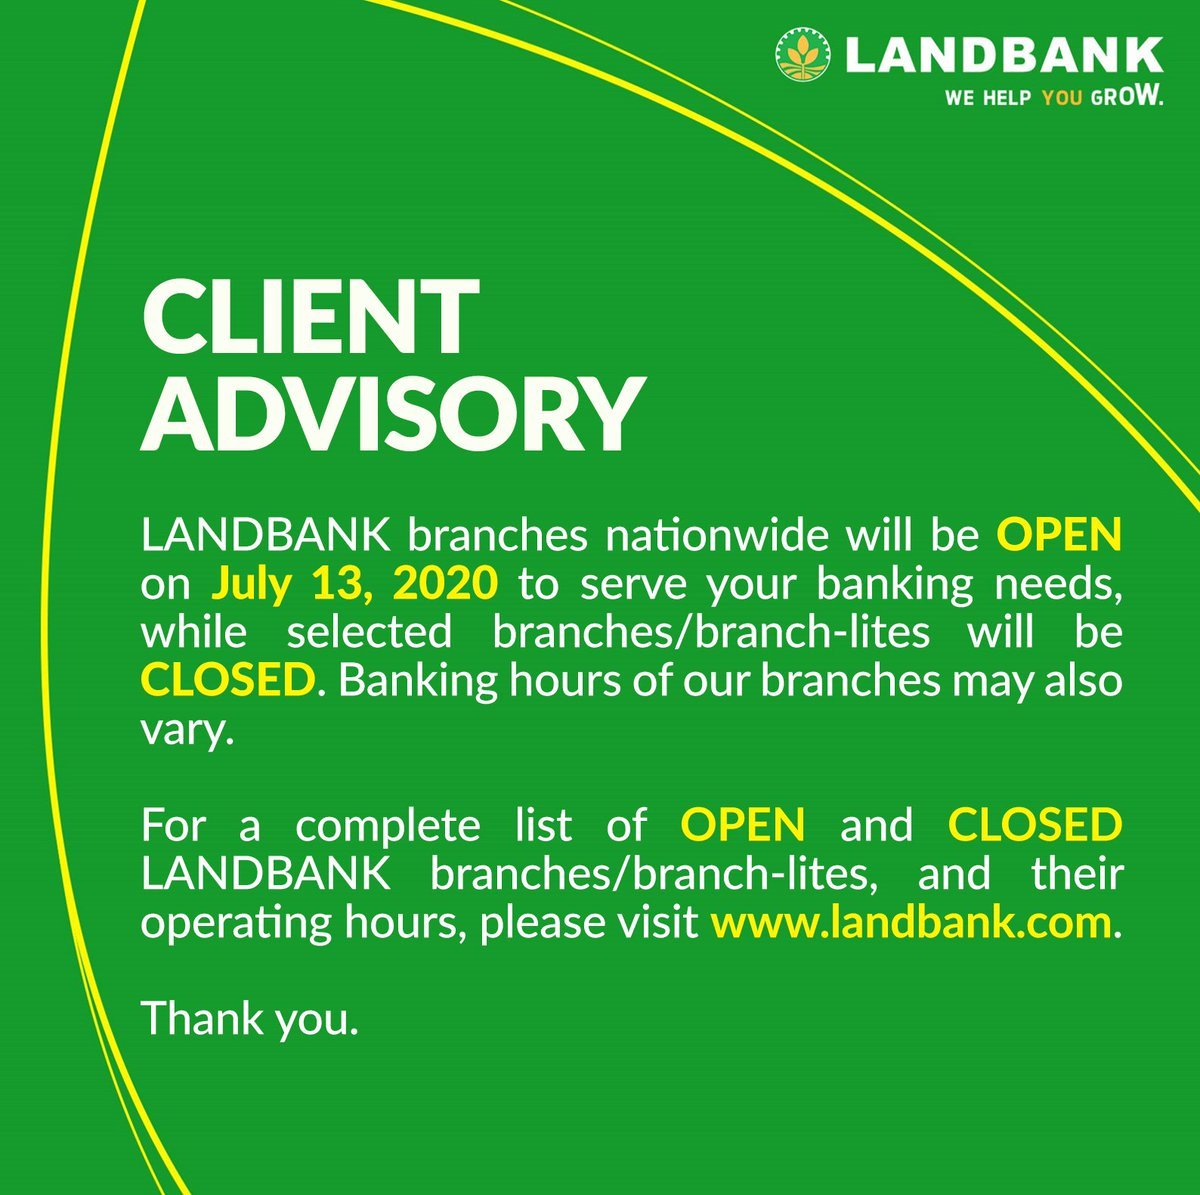 #LANDBANKClientAdvisory   To see the full list of OPEN branches, visit https://t.co/hGu8AUTXWs  To see the full list of CLOSED branches, visit https://t.co/yIKS29G3Hi https://t.co/91nSS43I8E